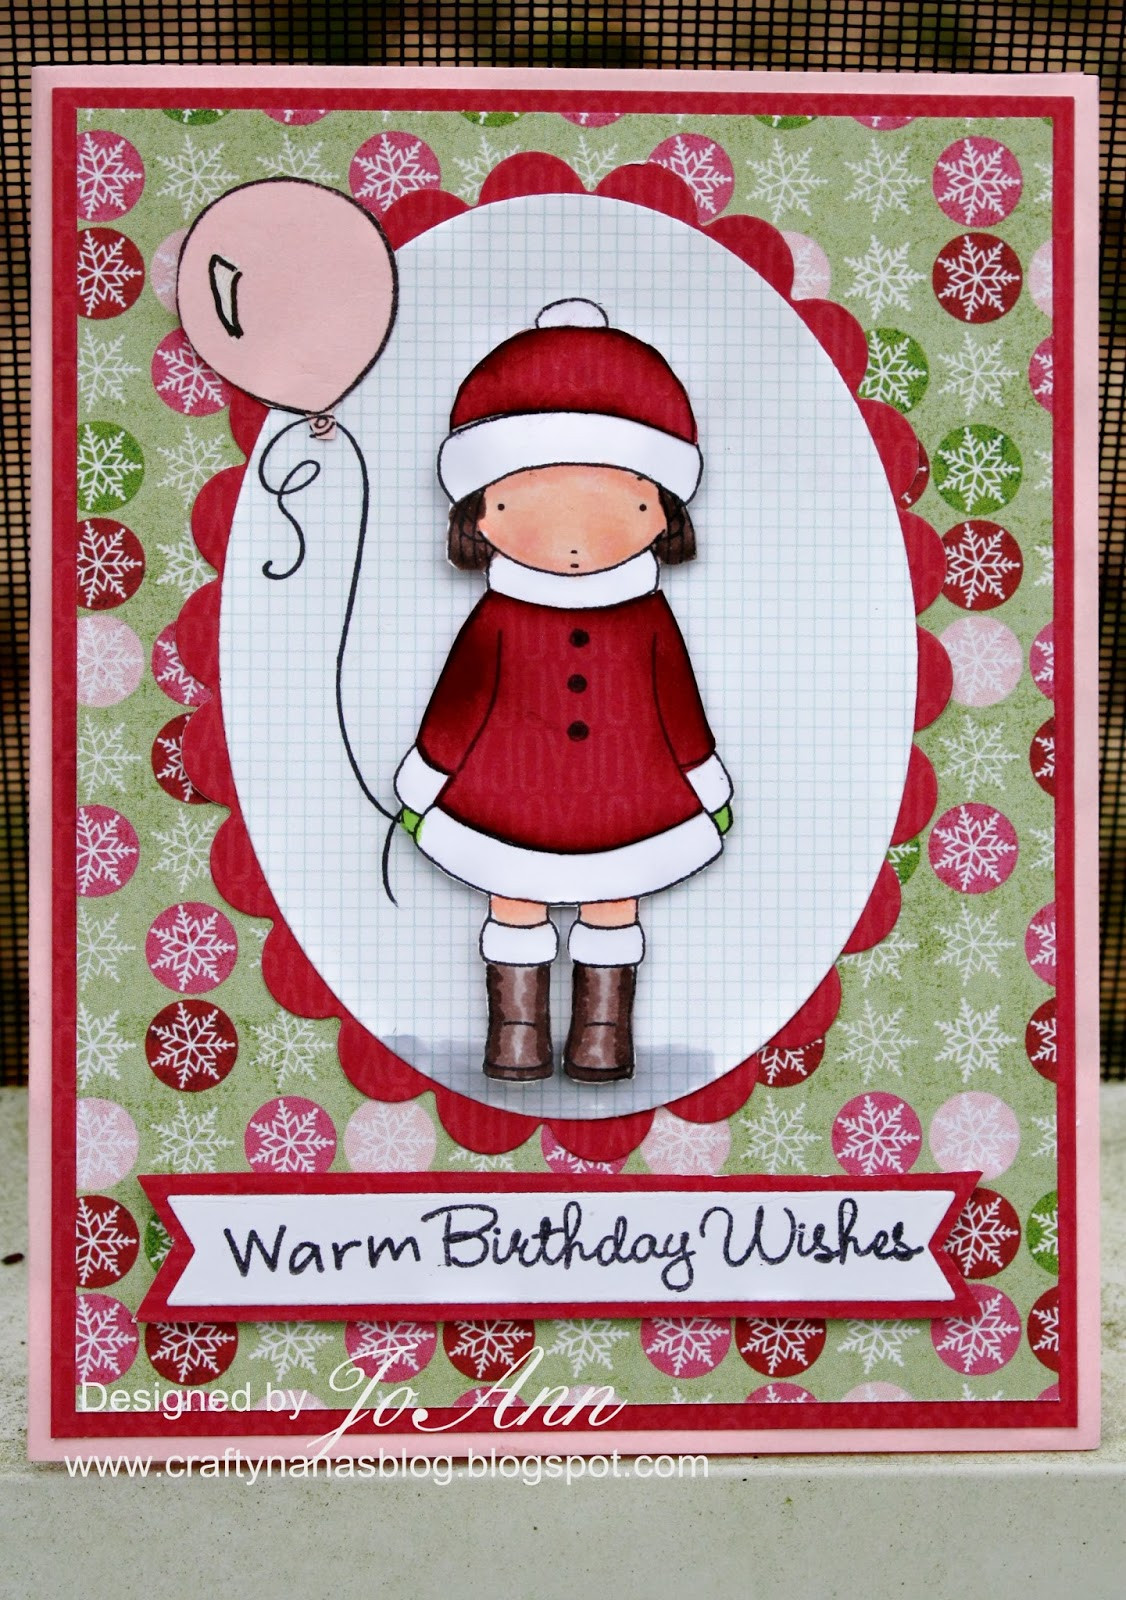 Best ideas about Warmest Birthday Wishes . Save or Pin Crafty Nana s Blog Warm Birthday Wishes Now.